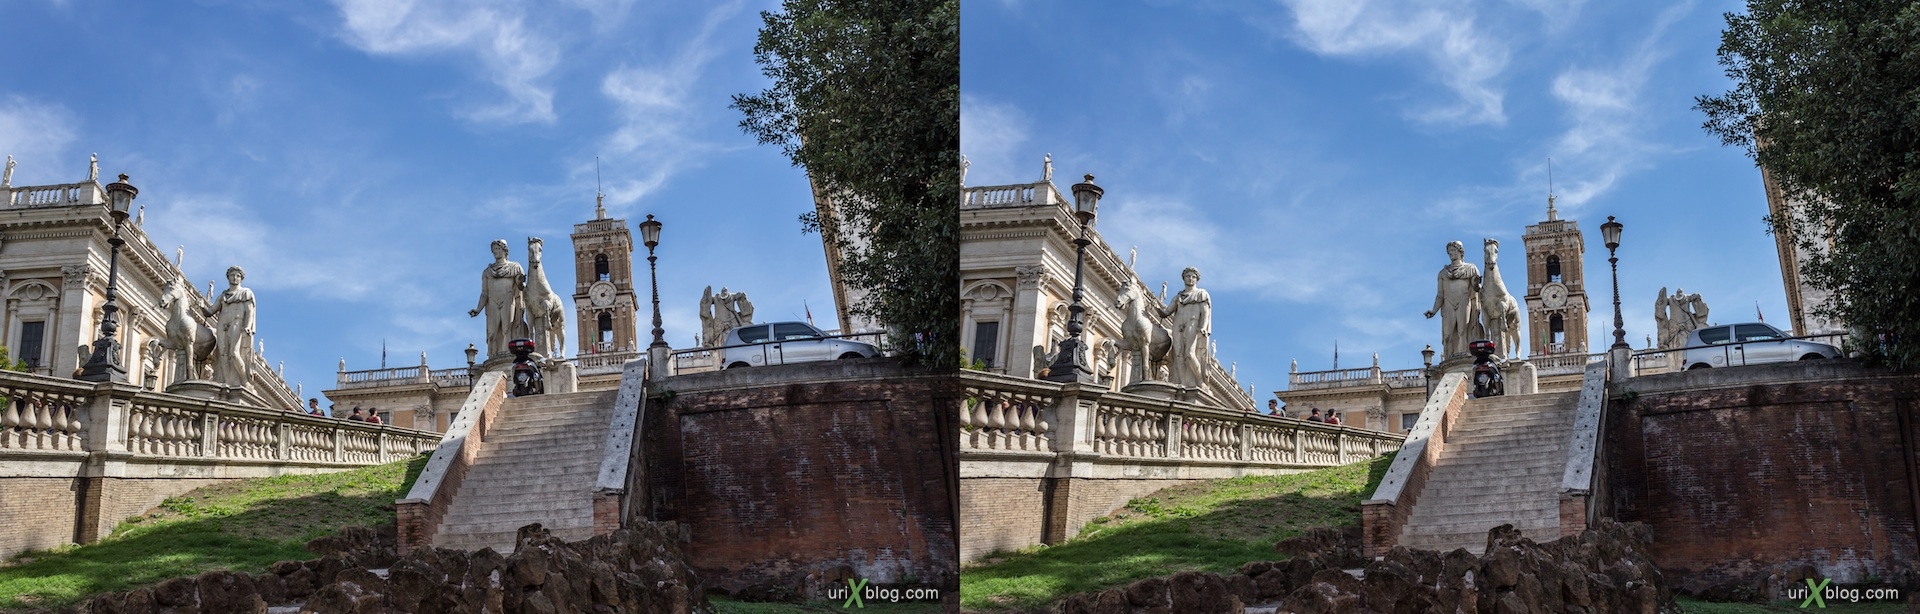 2012, Capitoline square, stairs, 3D, stereo pair, cross-eyed, crossview, cross view stereo pair